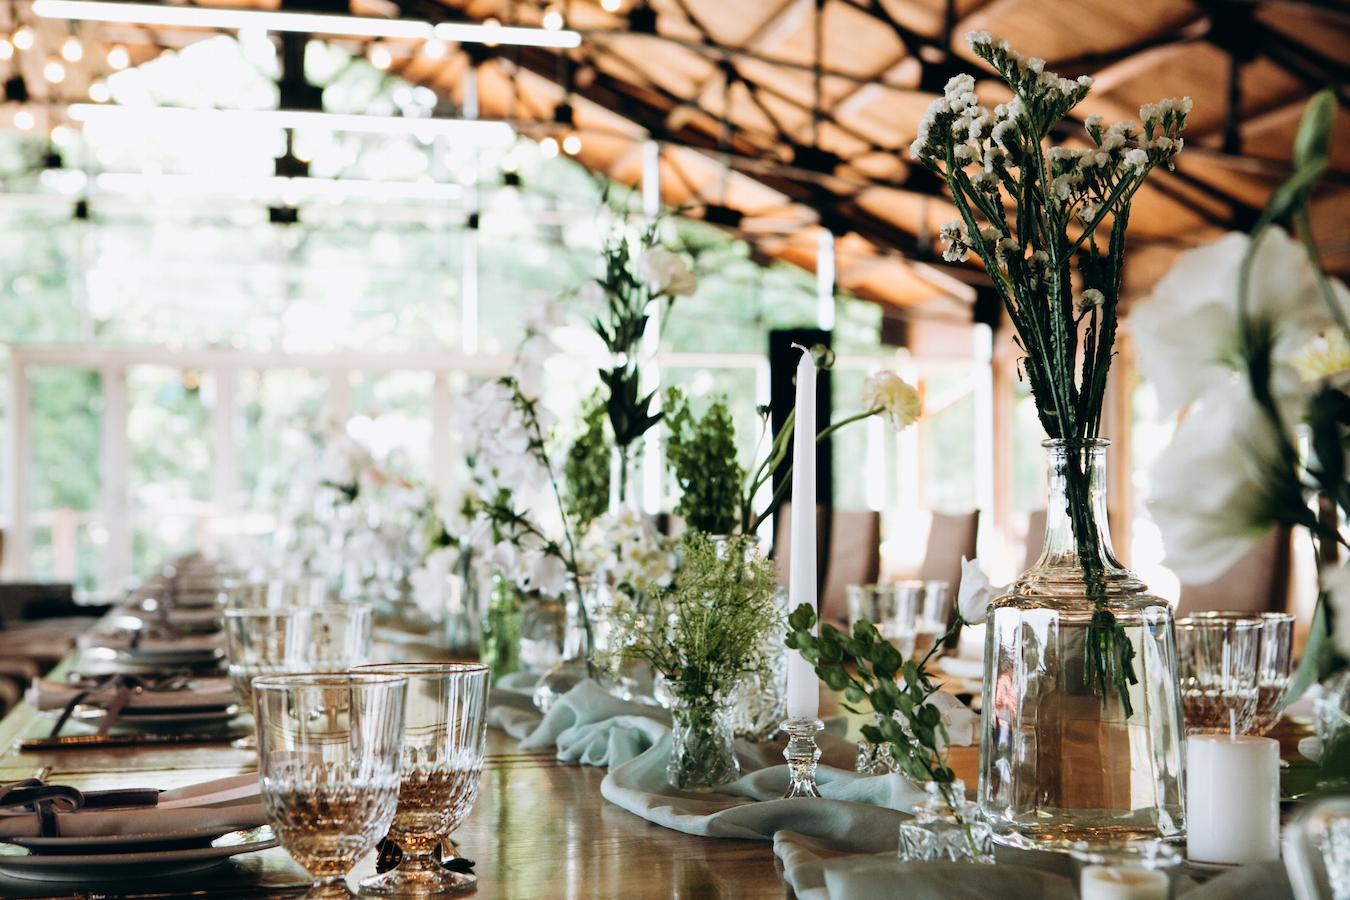 5 venue factors to consider when planning an event